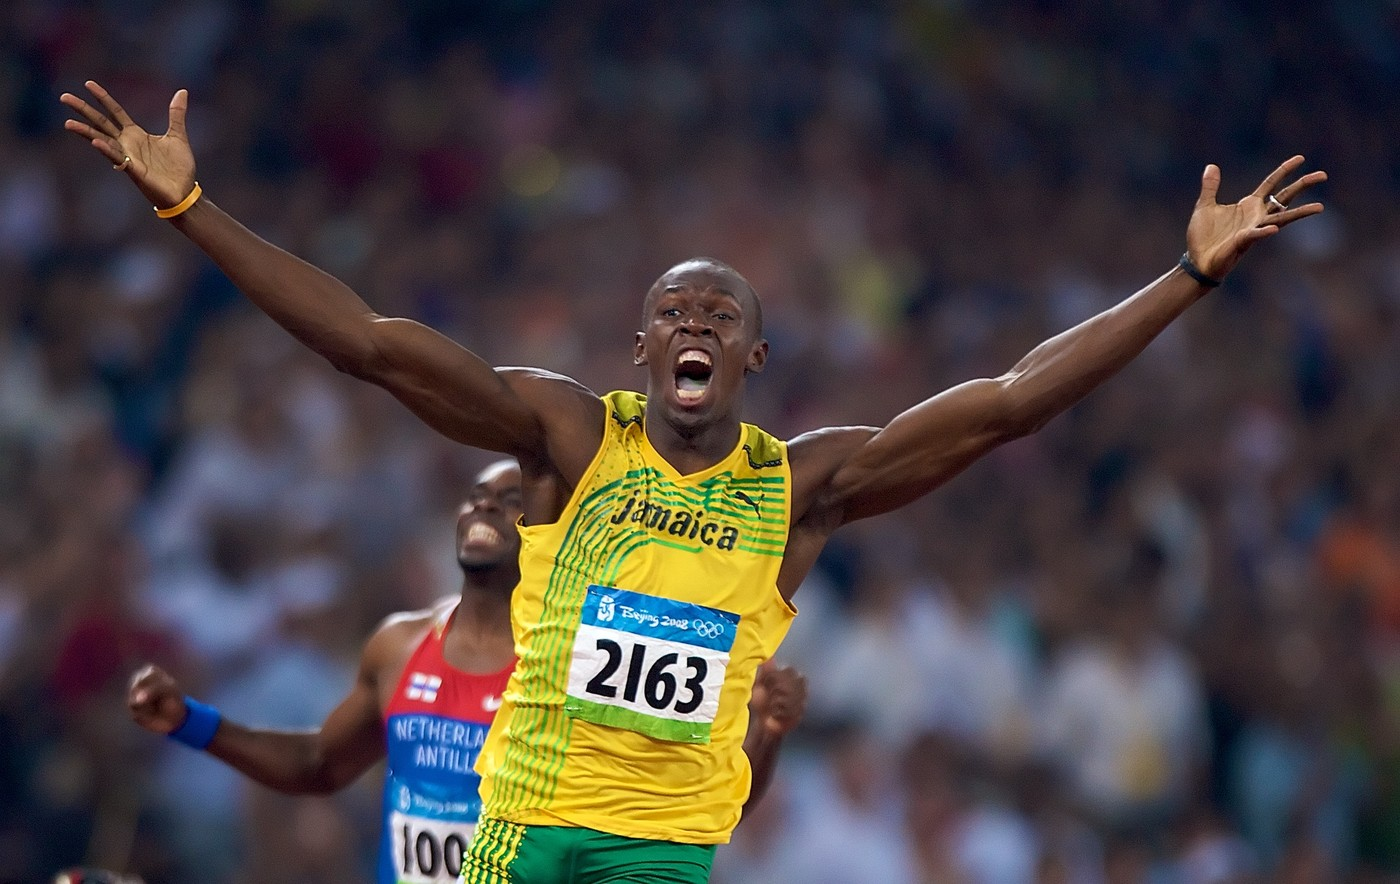 Usain Bolt Wallpaper 01 Pictures